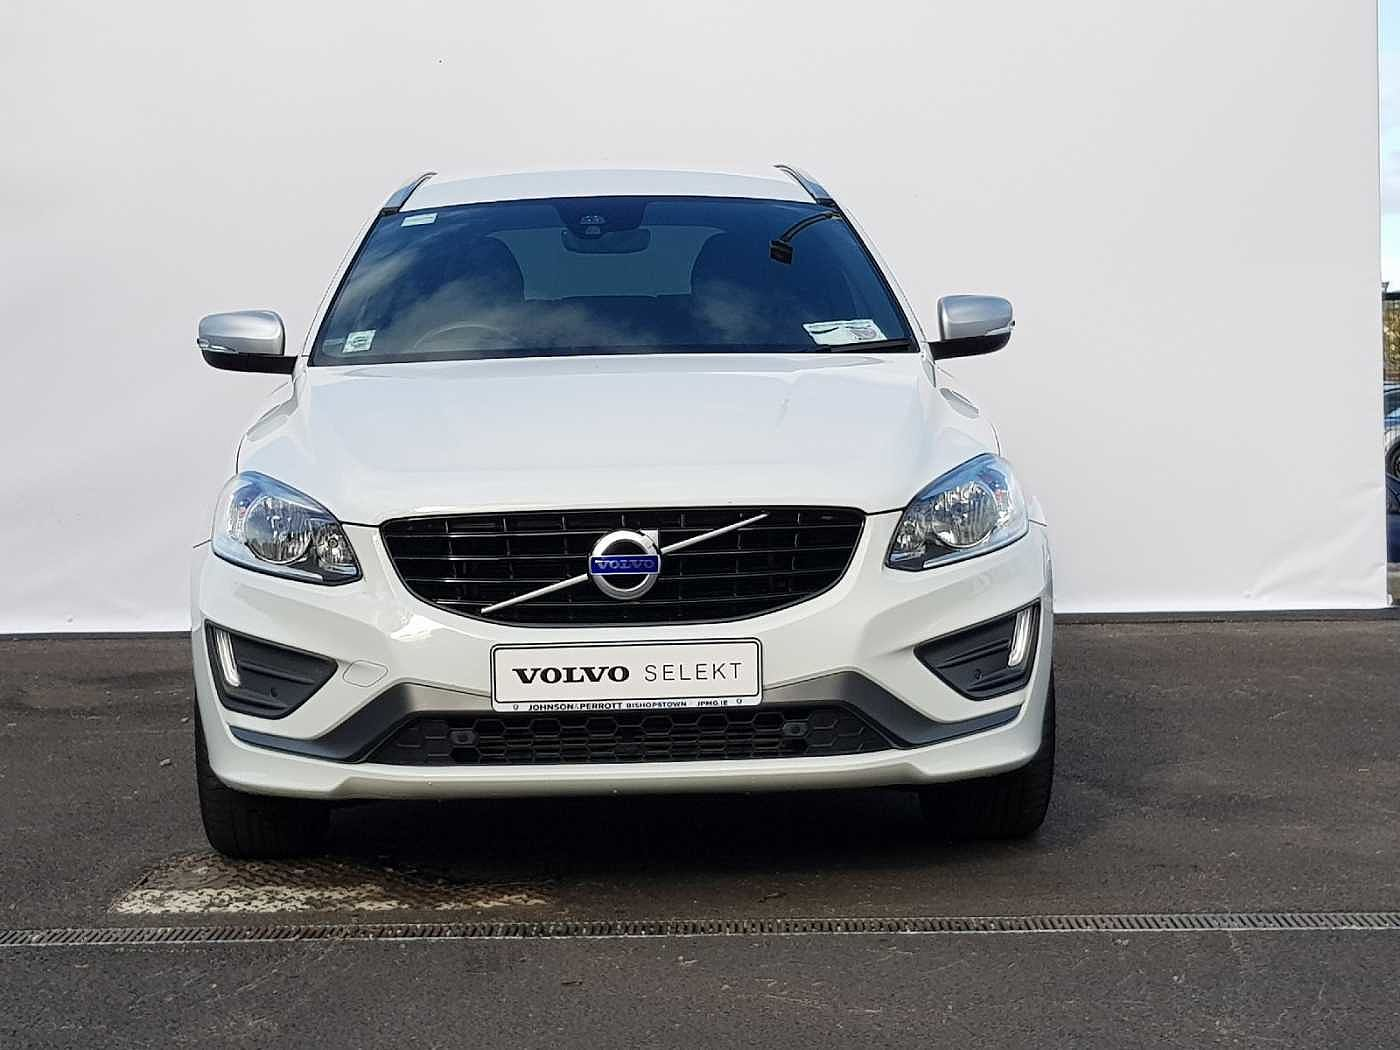 Volvo  D4 R-Design SE Auto (Heated Seats, Heated Screen, Rear Camera,  Leather)